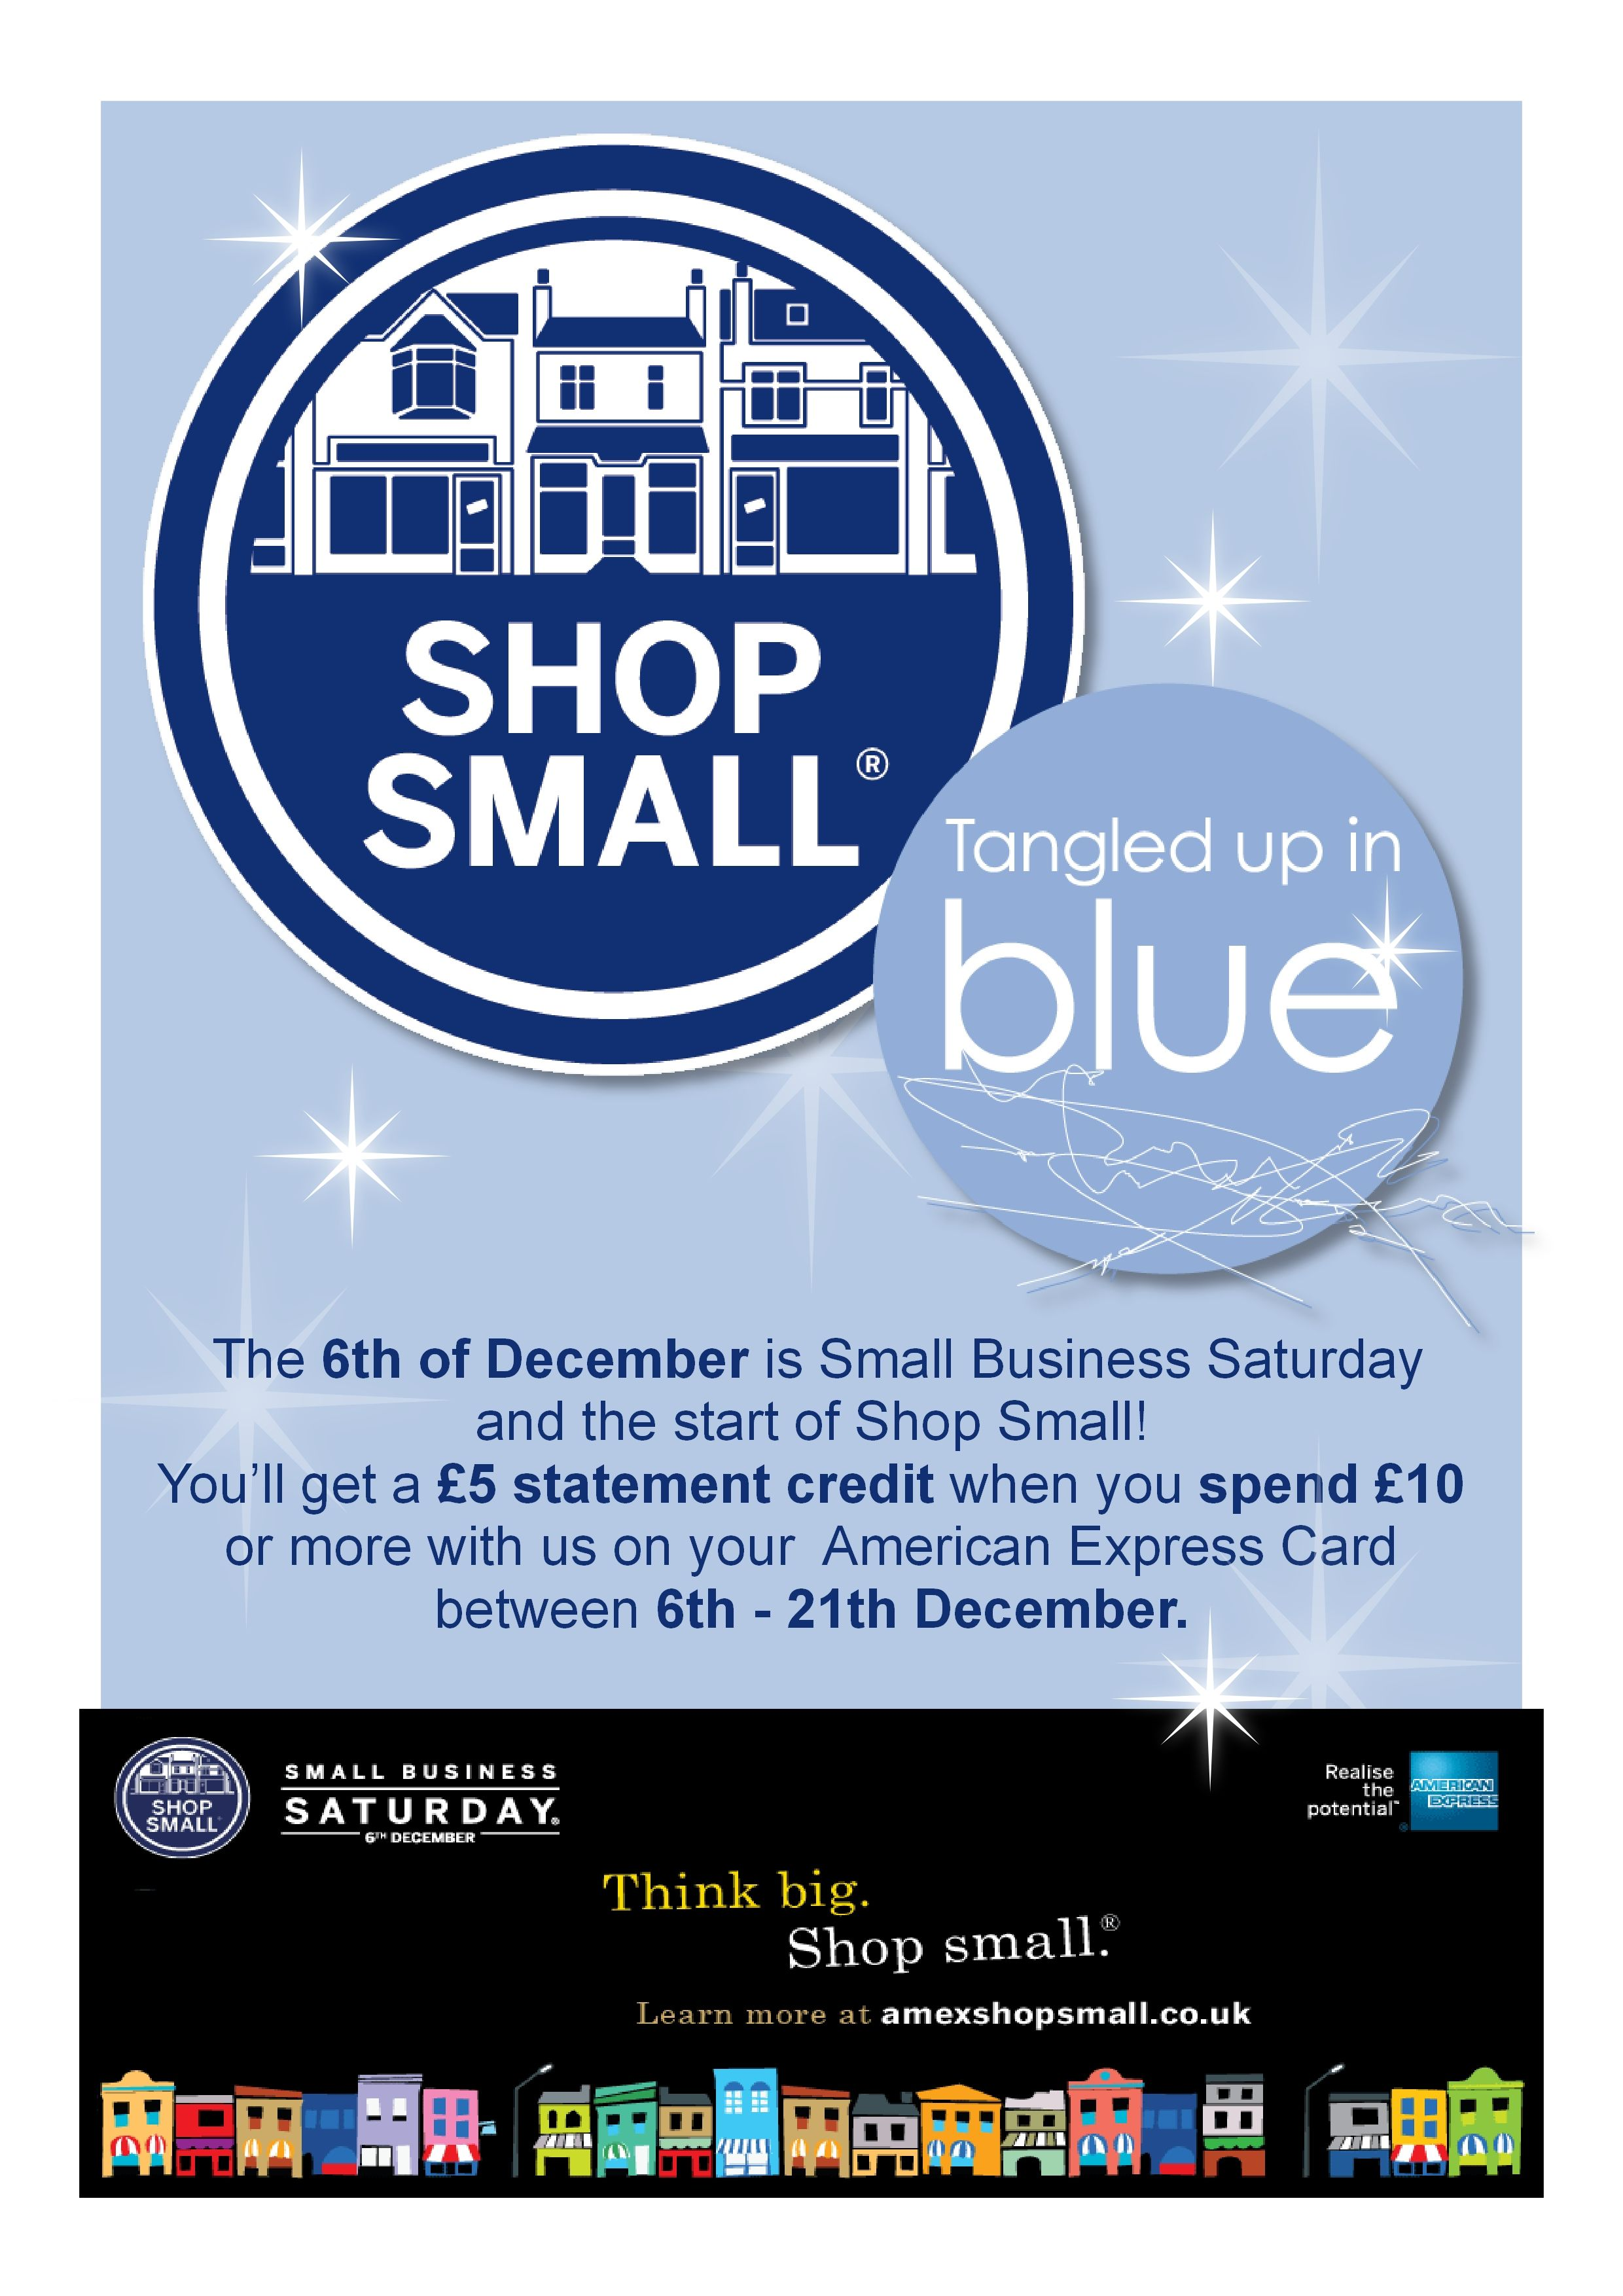 Be rewarded for supporting small businesses like ours during Shop Small. Spend £10 or more with us on your American Express Card between 6-21 December and get a £5 statement credit.  TUIB :) x